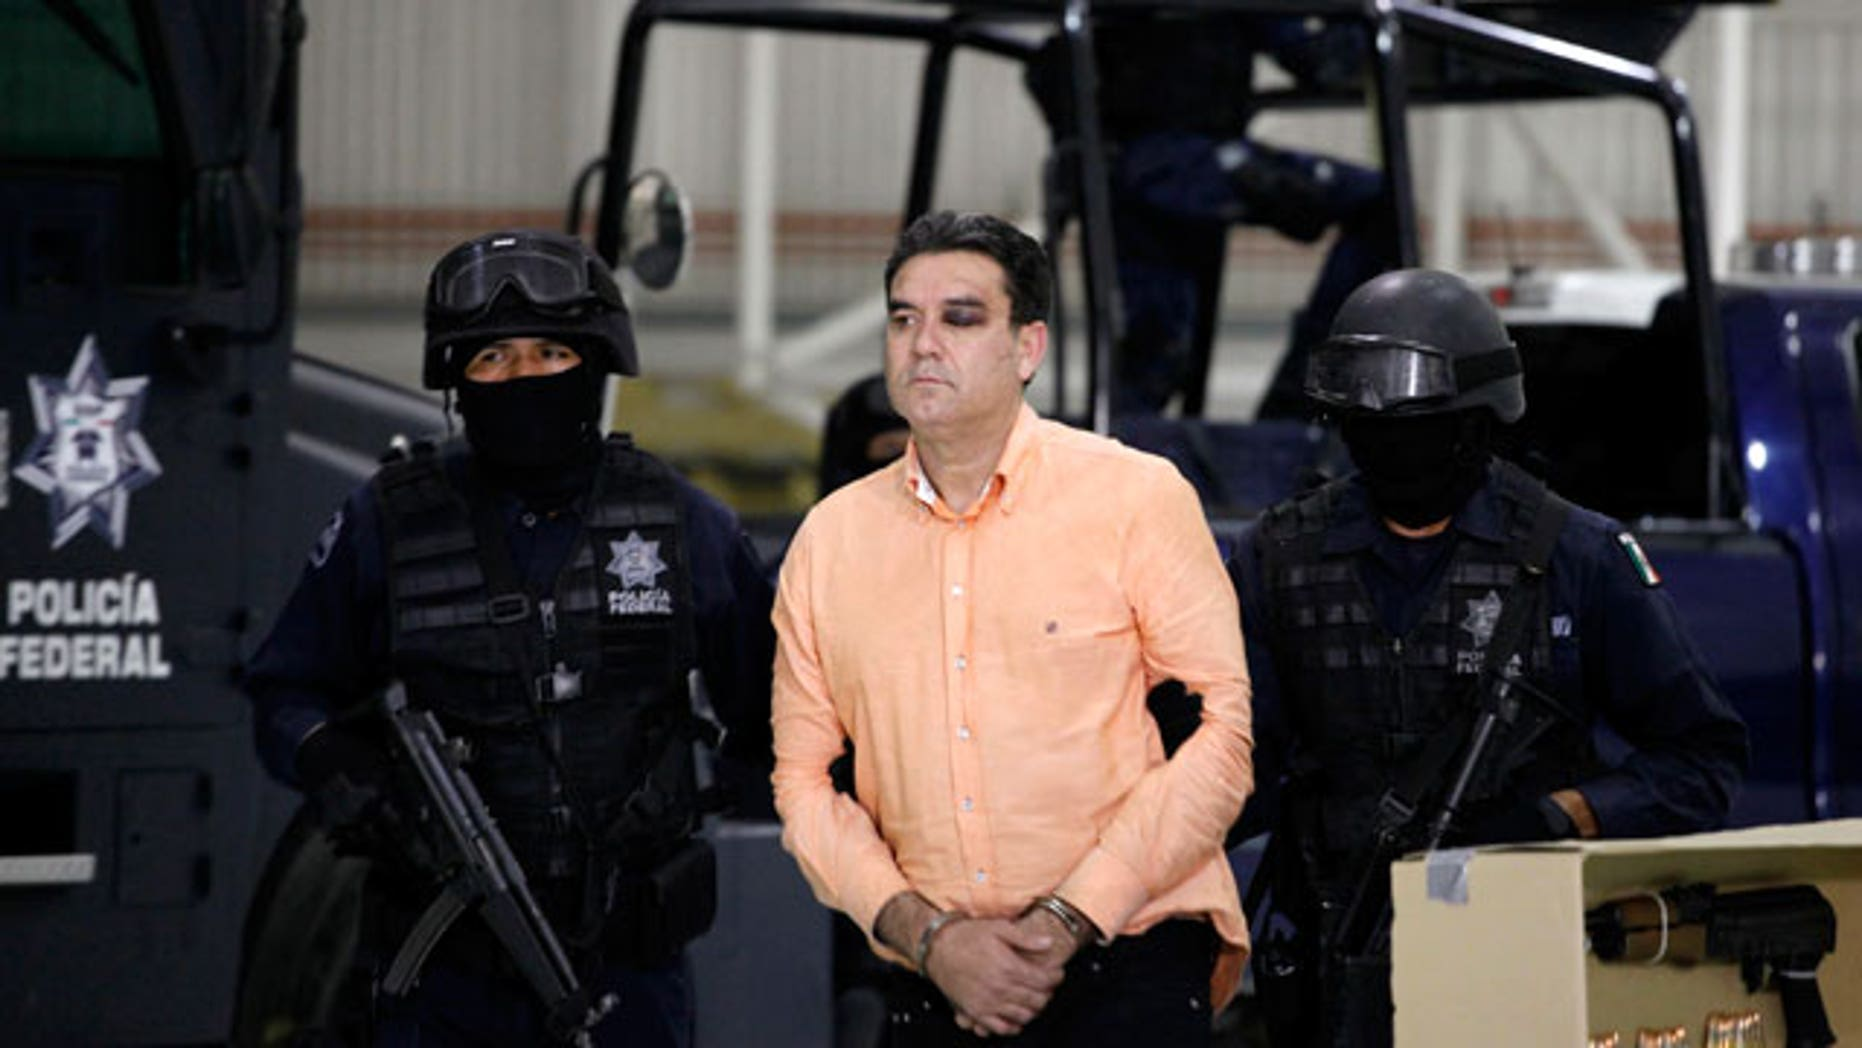 "Police officers escort suspected drug trafficker Manuel Fernandez as he is presented to the media at the federal police headquarters in Mexico City, Monday Nov. 8, 2010. According to federal police Fernandez, an alleged member of the criminal organization led by Joaquin Guzman Loera, aka ""El Chapo Guzman"", was arrested Sunday in the northern city of Culiacan, Sinaloa state."